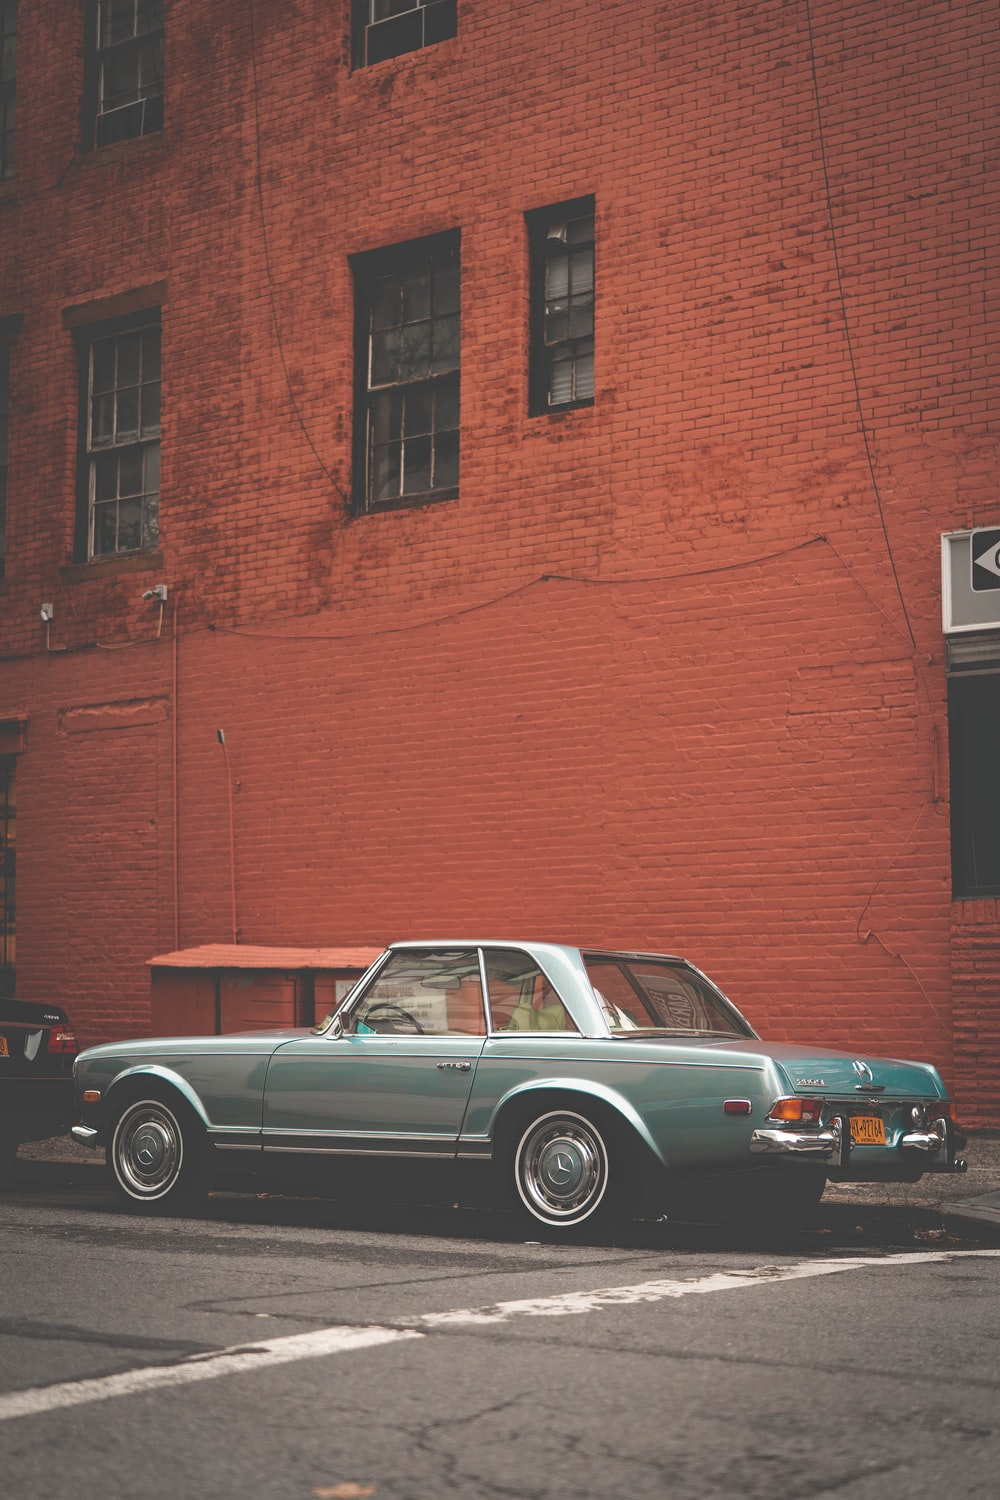 parked gray coupe beside brown concrete building